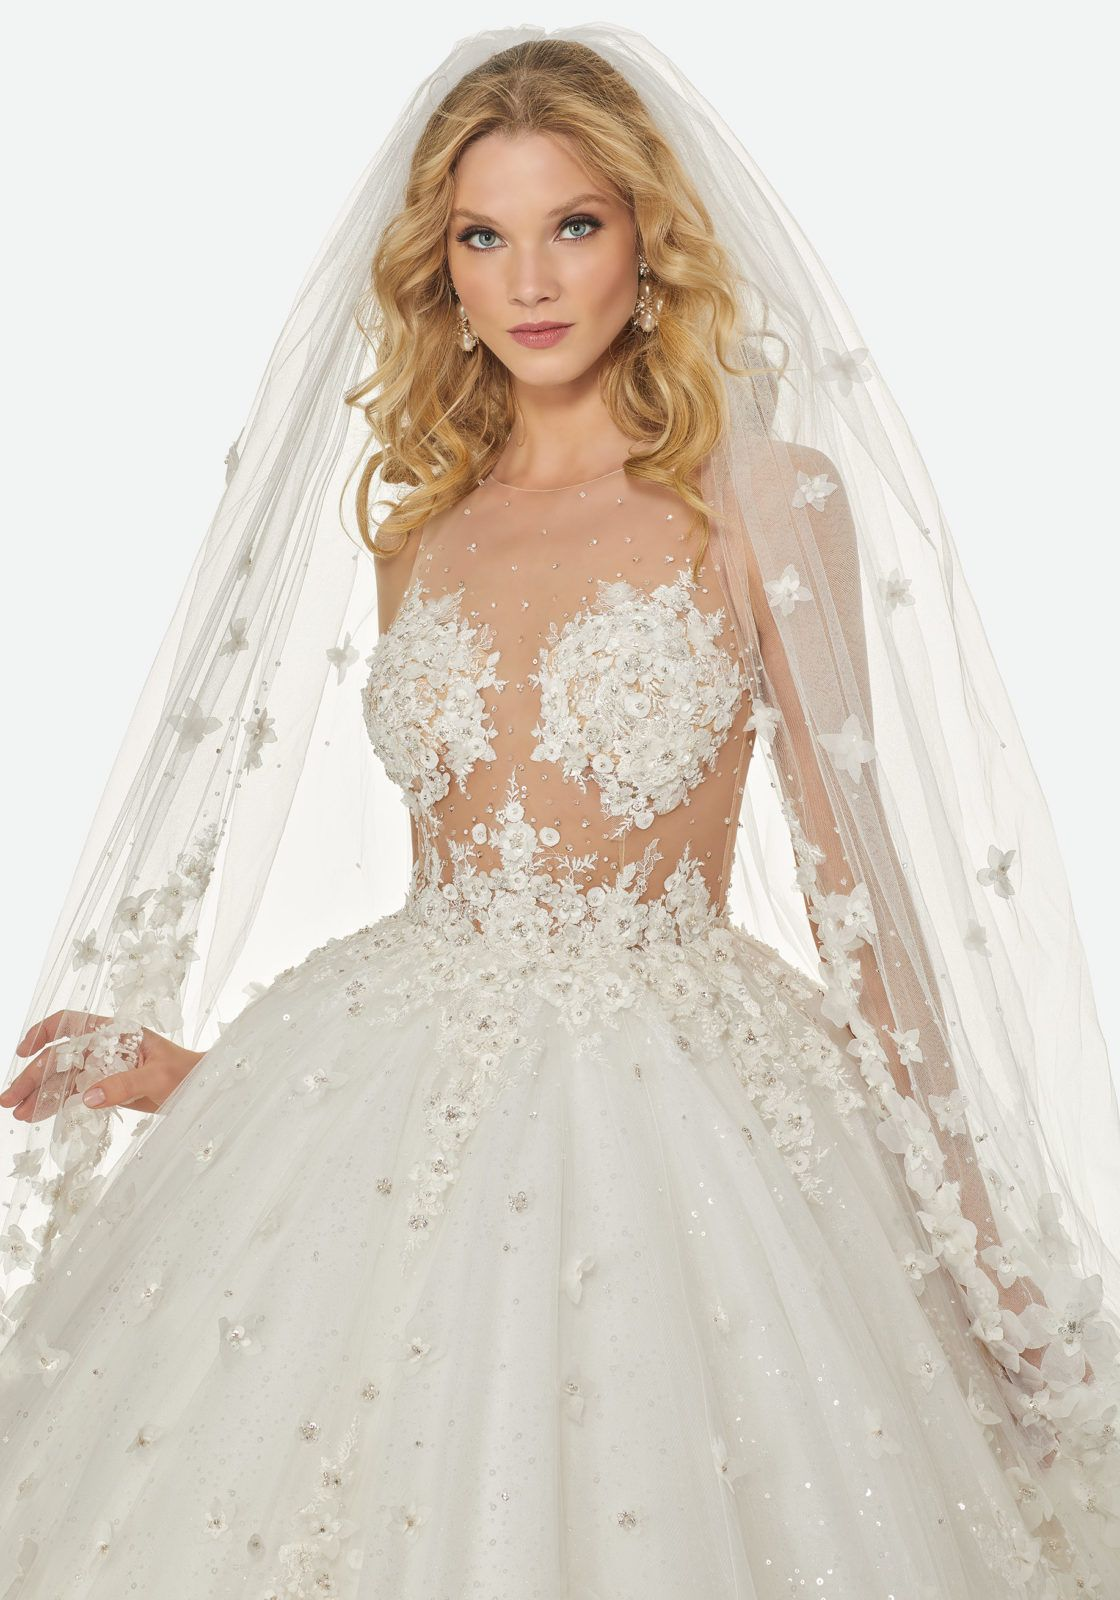 Brandi wedding dress in happily ever after pinterest